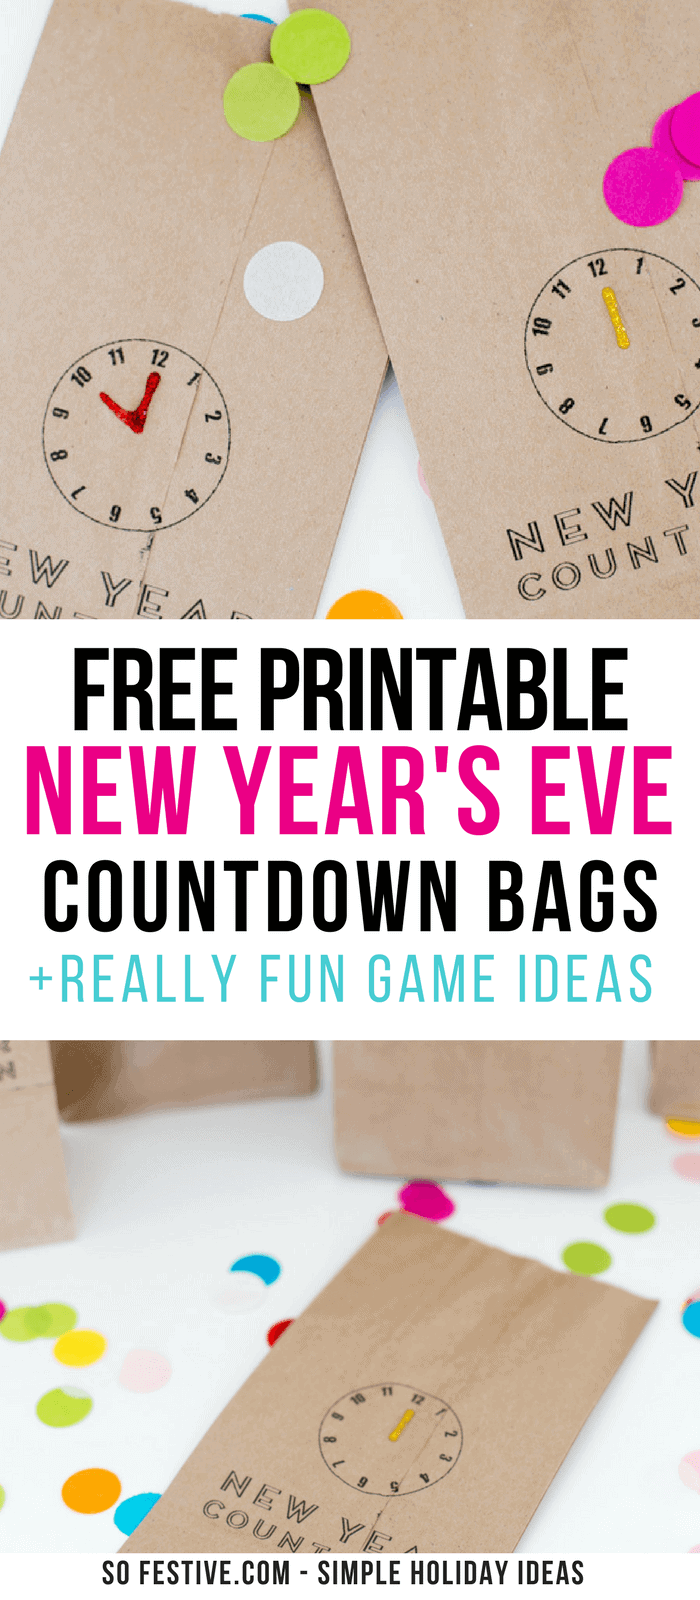 Free New Year's Eve Countdown Bag Printables! - So Festive!